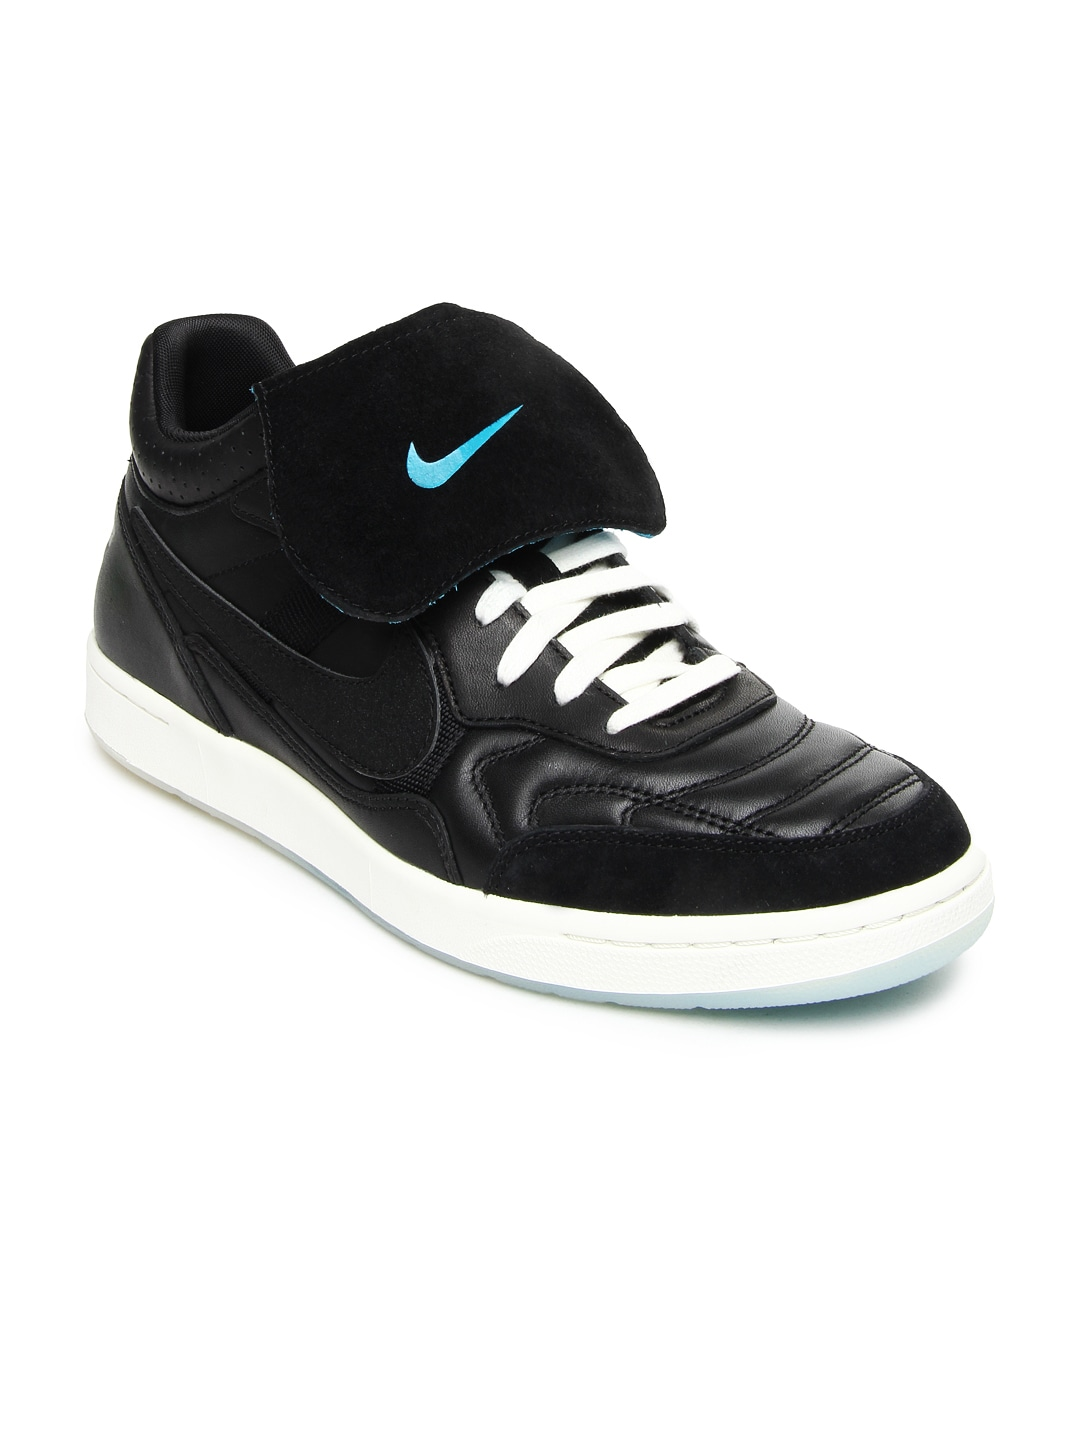 nike black tiempo 94 nsw casual shoes